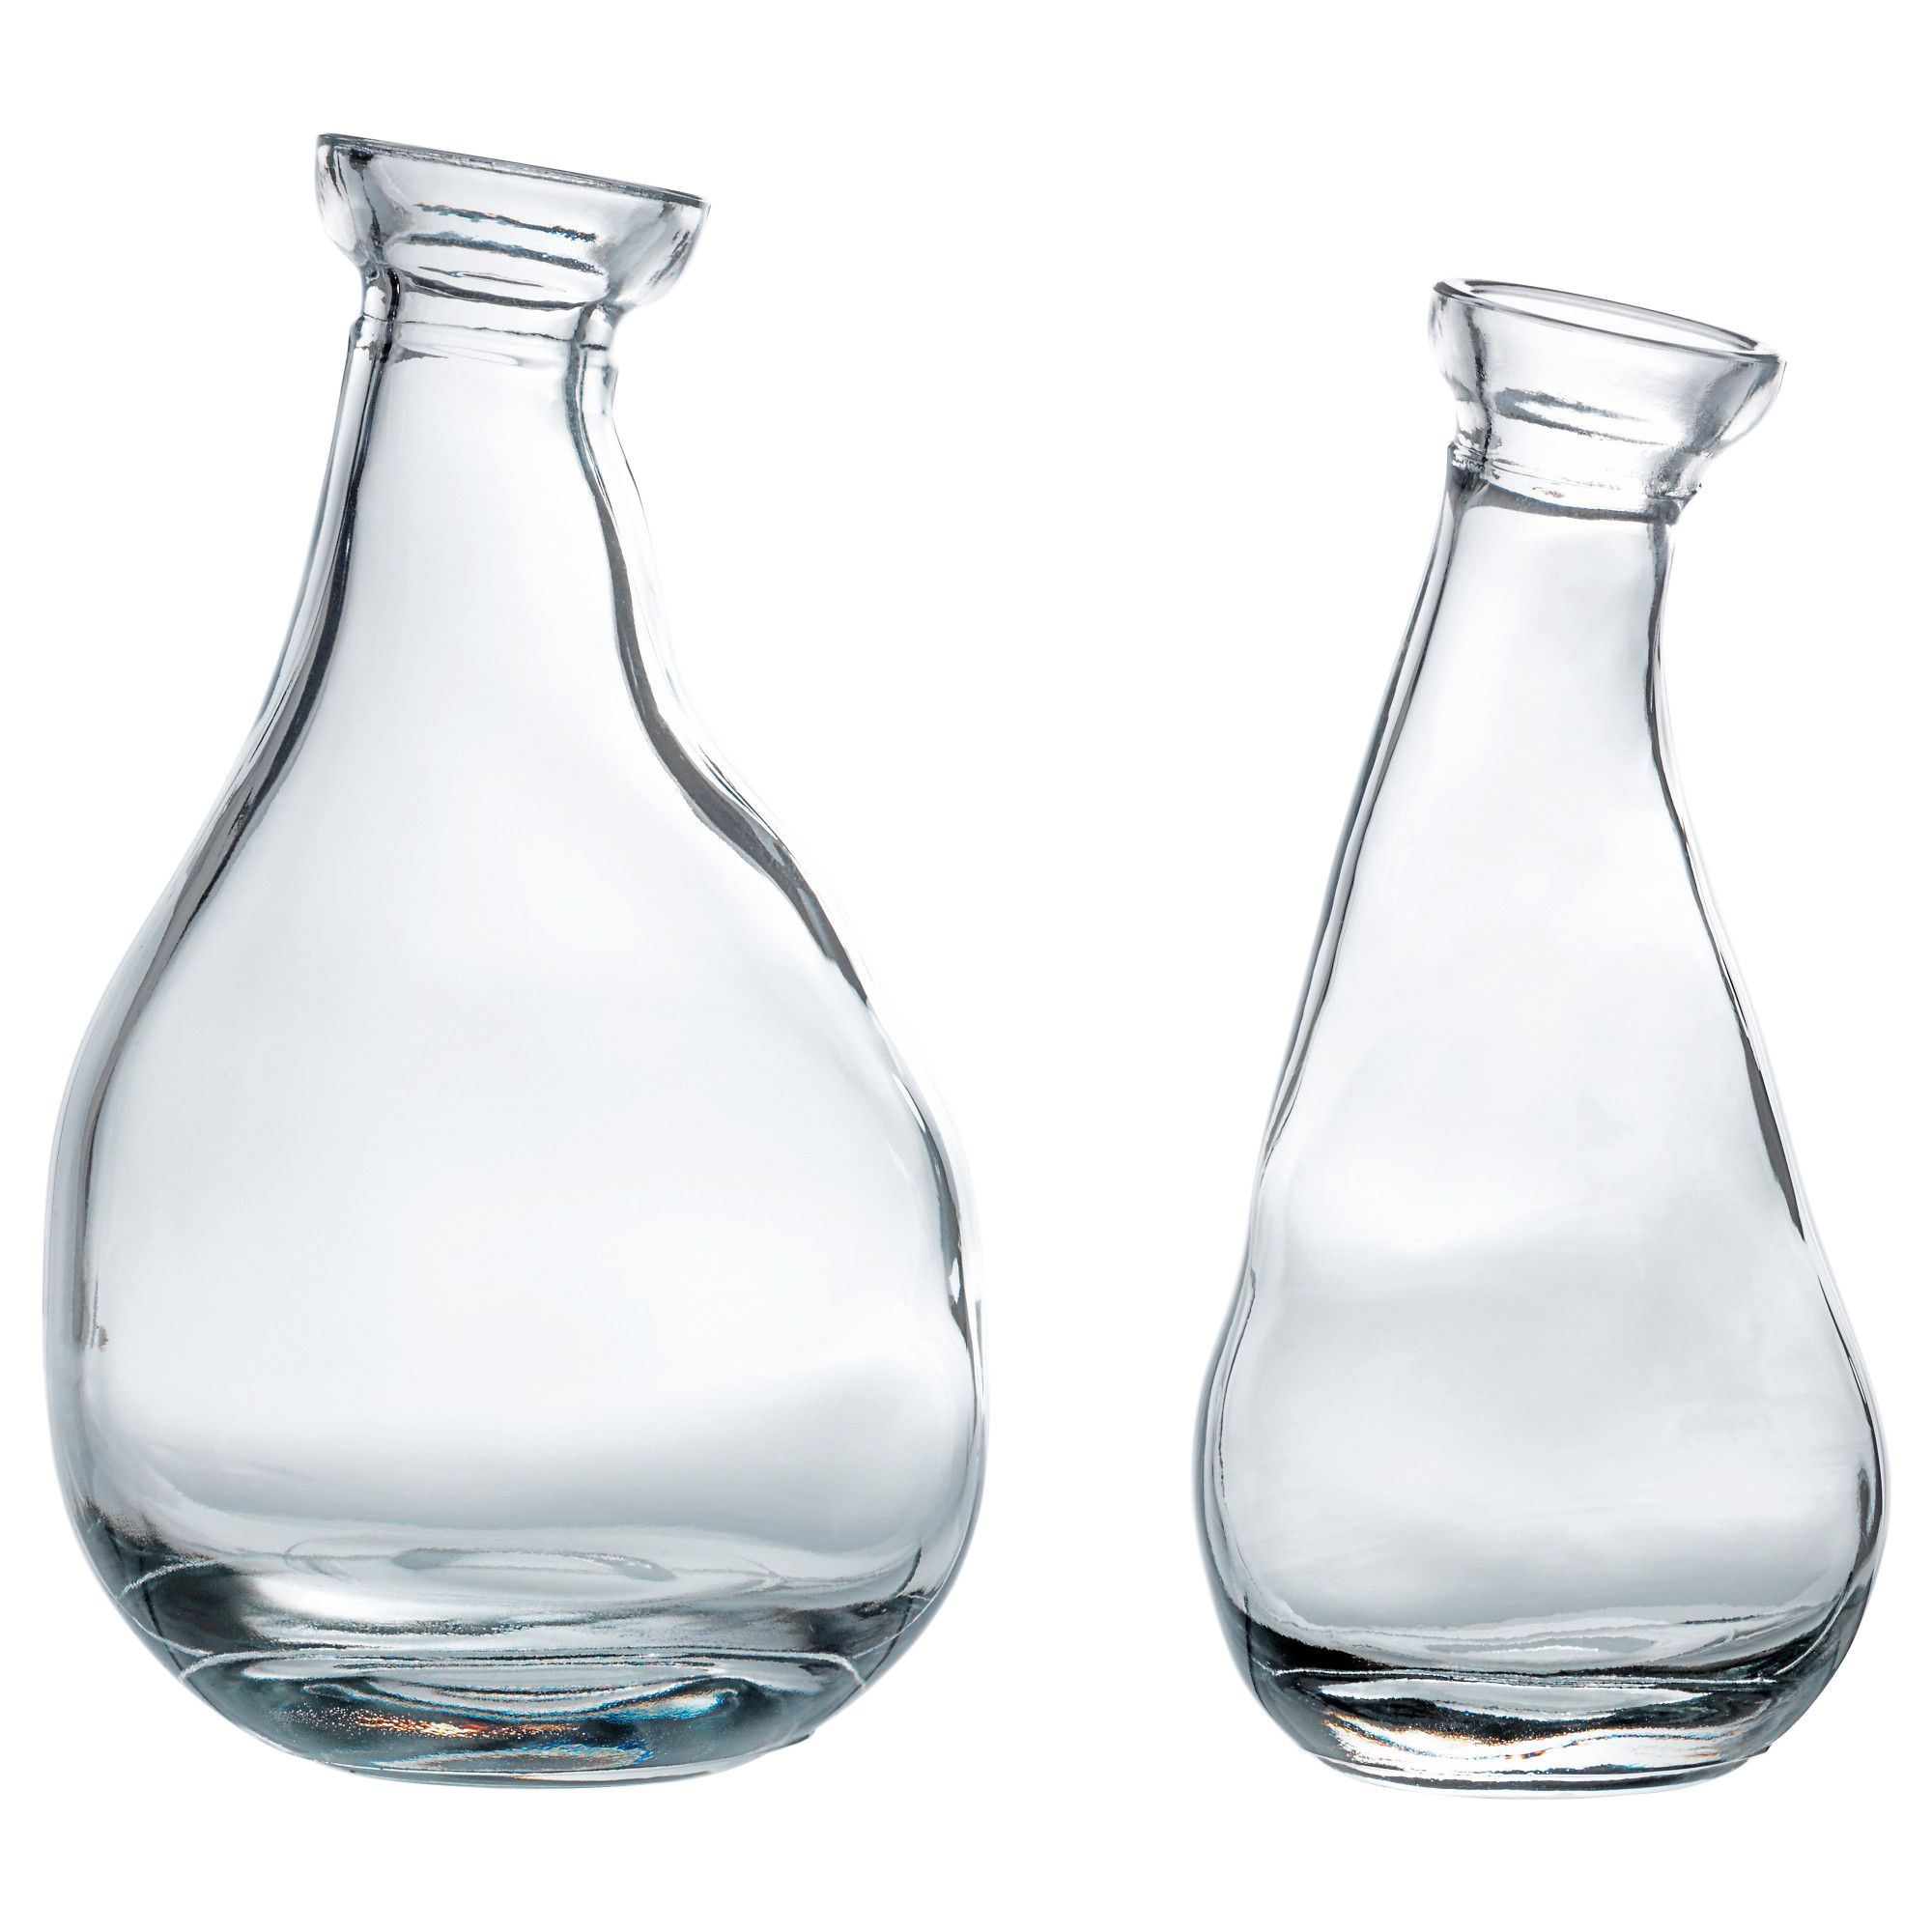 Ikea vrvind vase set of 2 the unique shape makes the vases ikea vrvind vase set of 2 clear glass the unique shape makes the vases beautiful both with and without flowers floridaeventfo Image collections